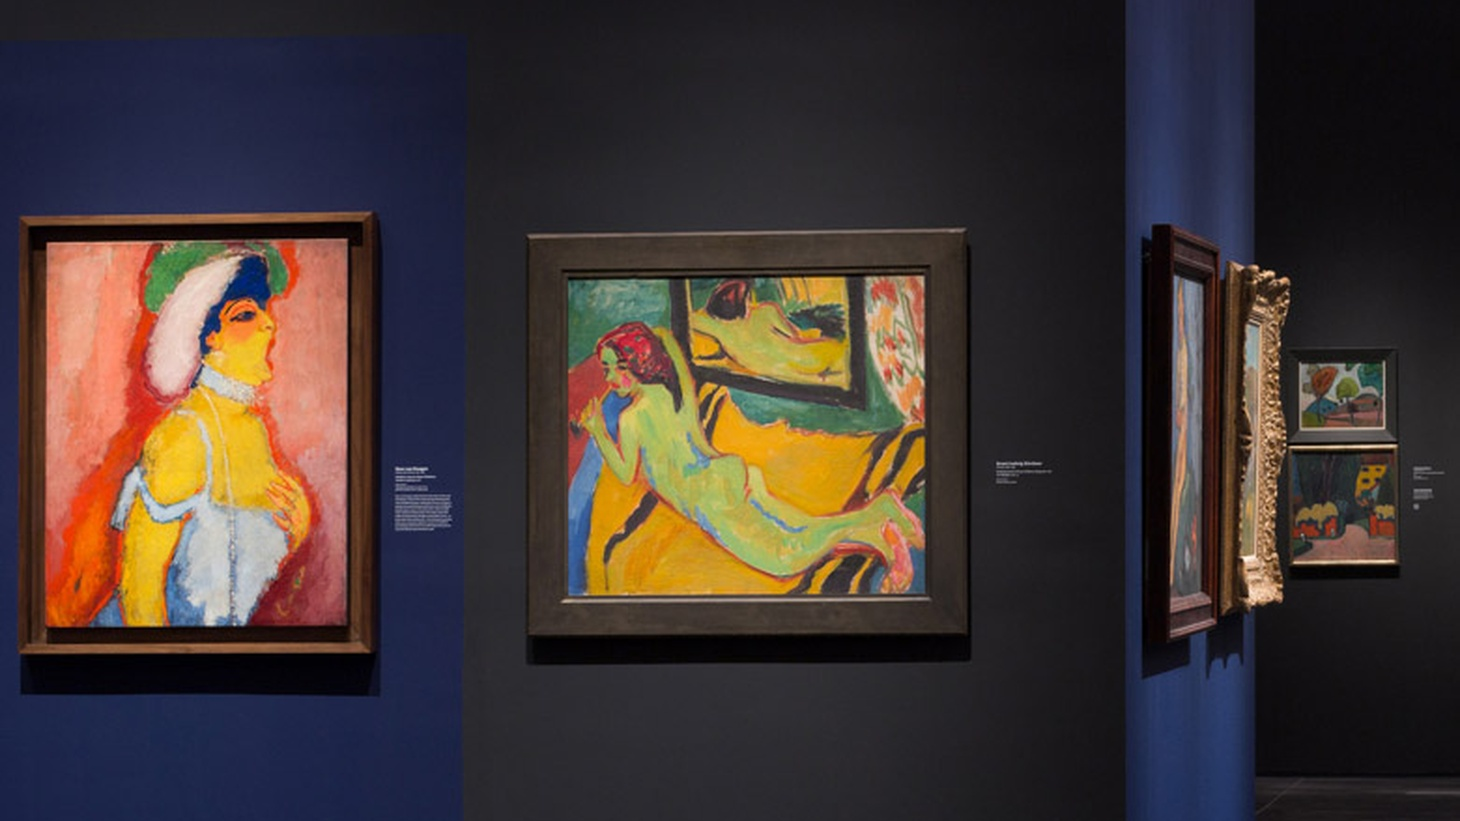 Edward Goldman praises the dangerous beauties on view at the current Expressionist exhibition at LACMA.